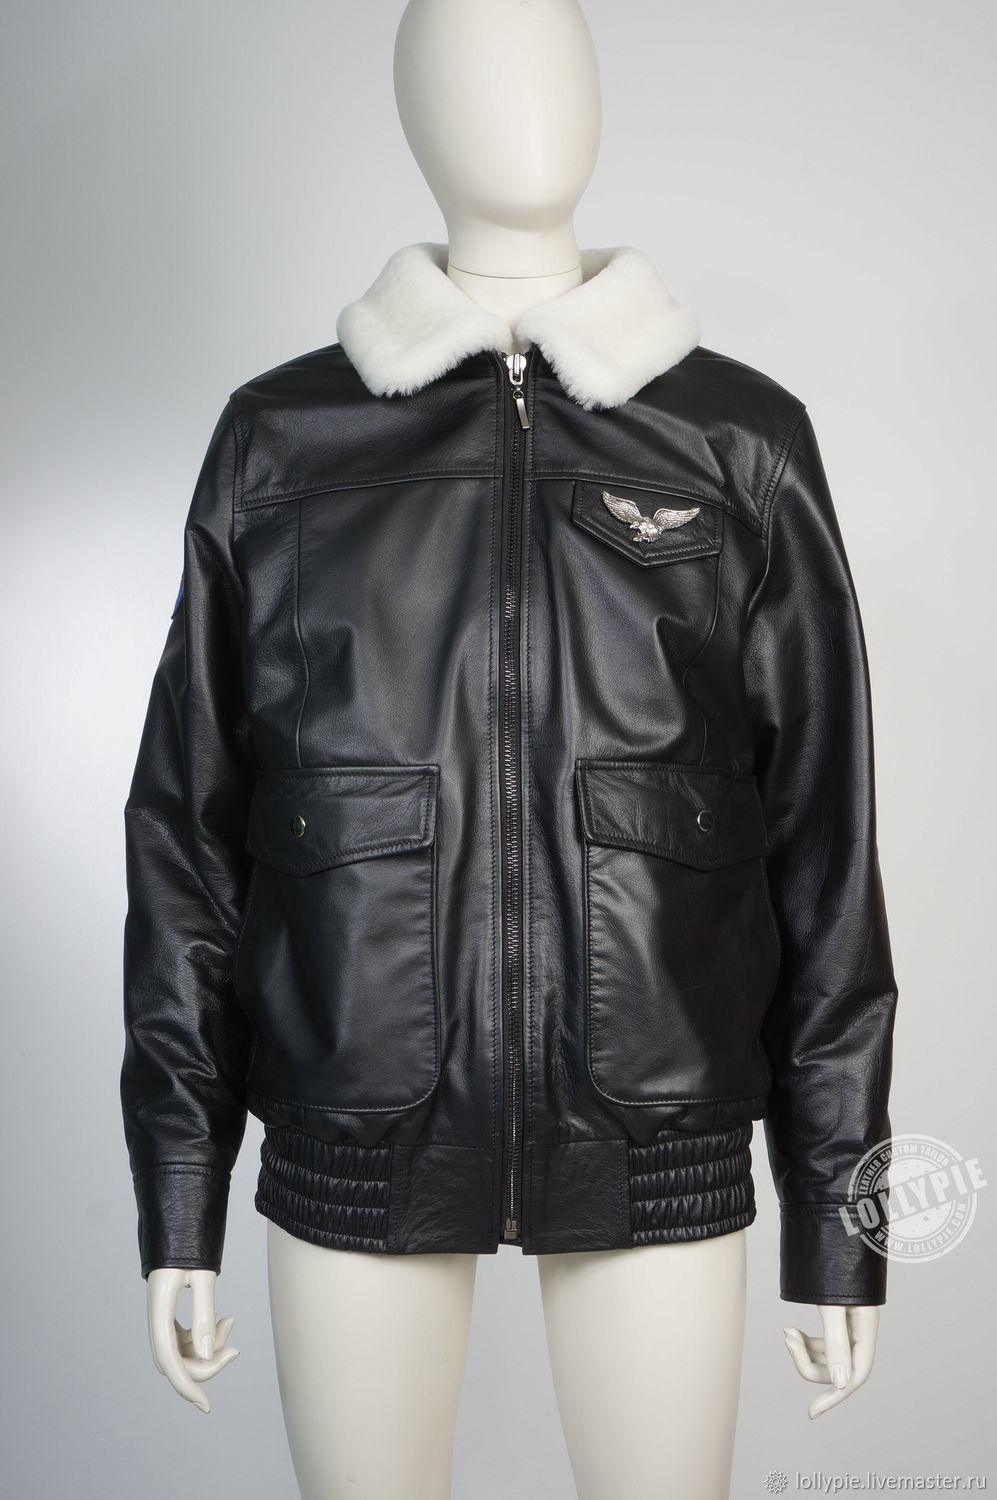 Pilot leather jacket, Outerwear Jackets, Moscow,  Фото №1